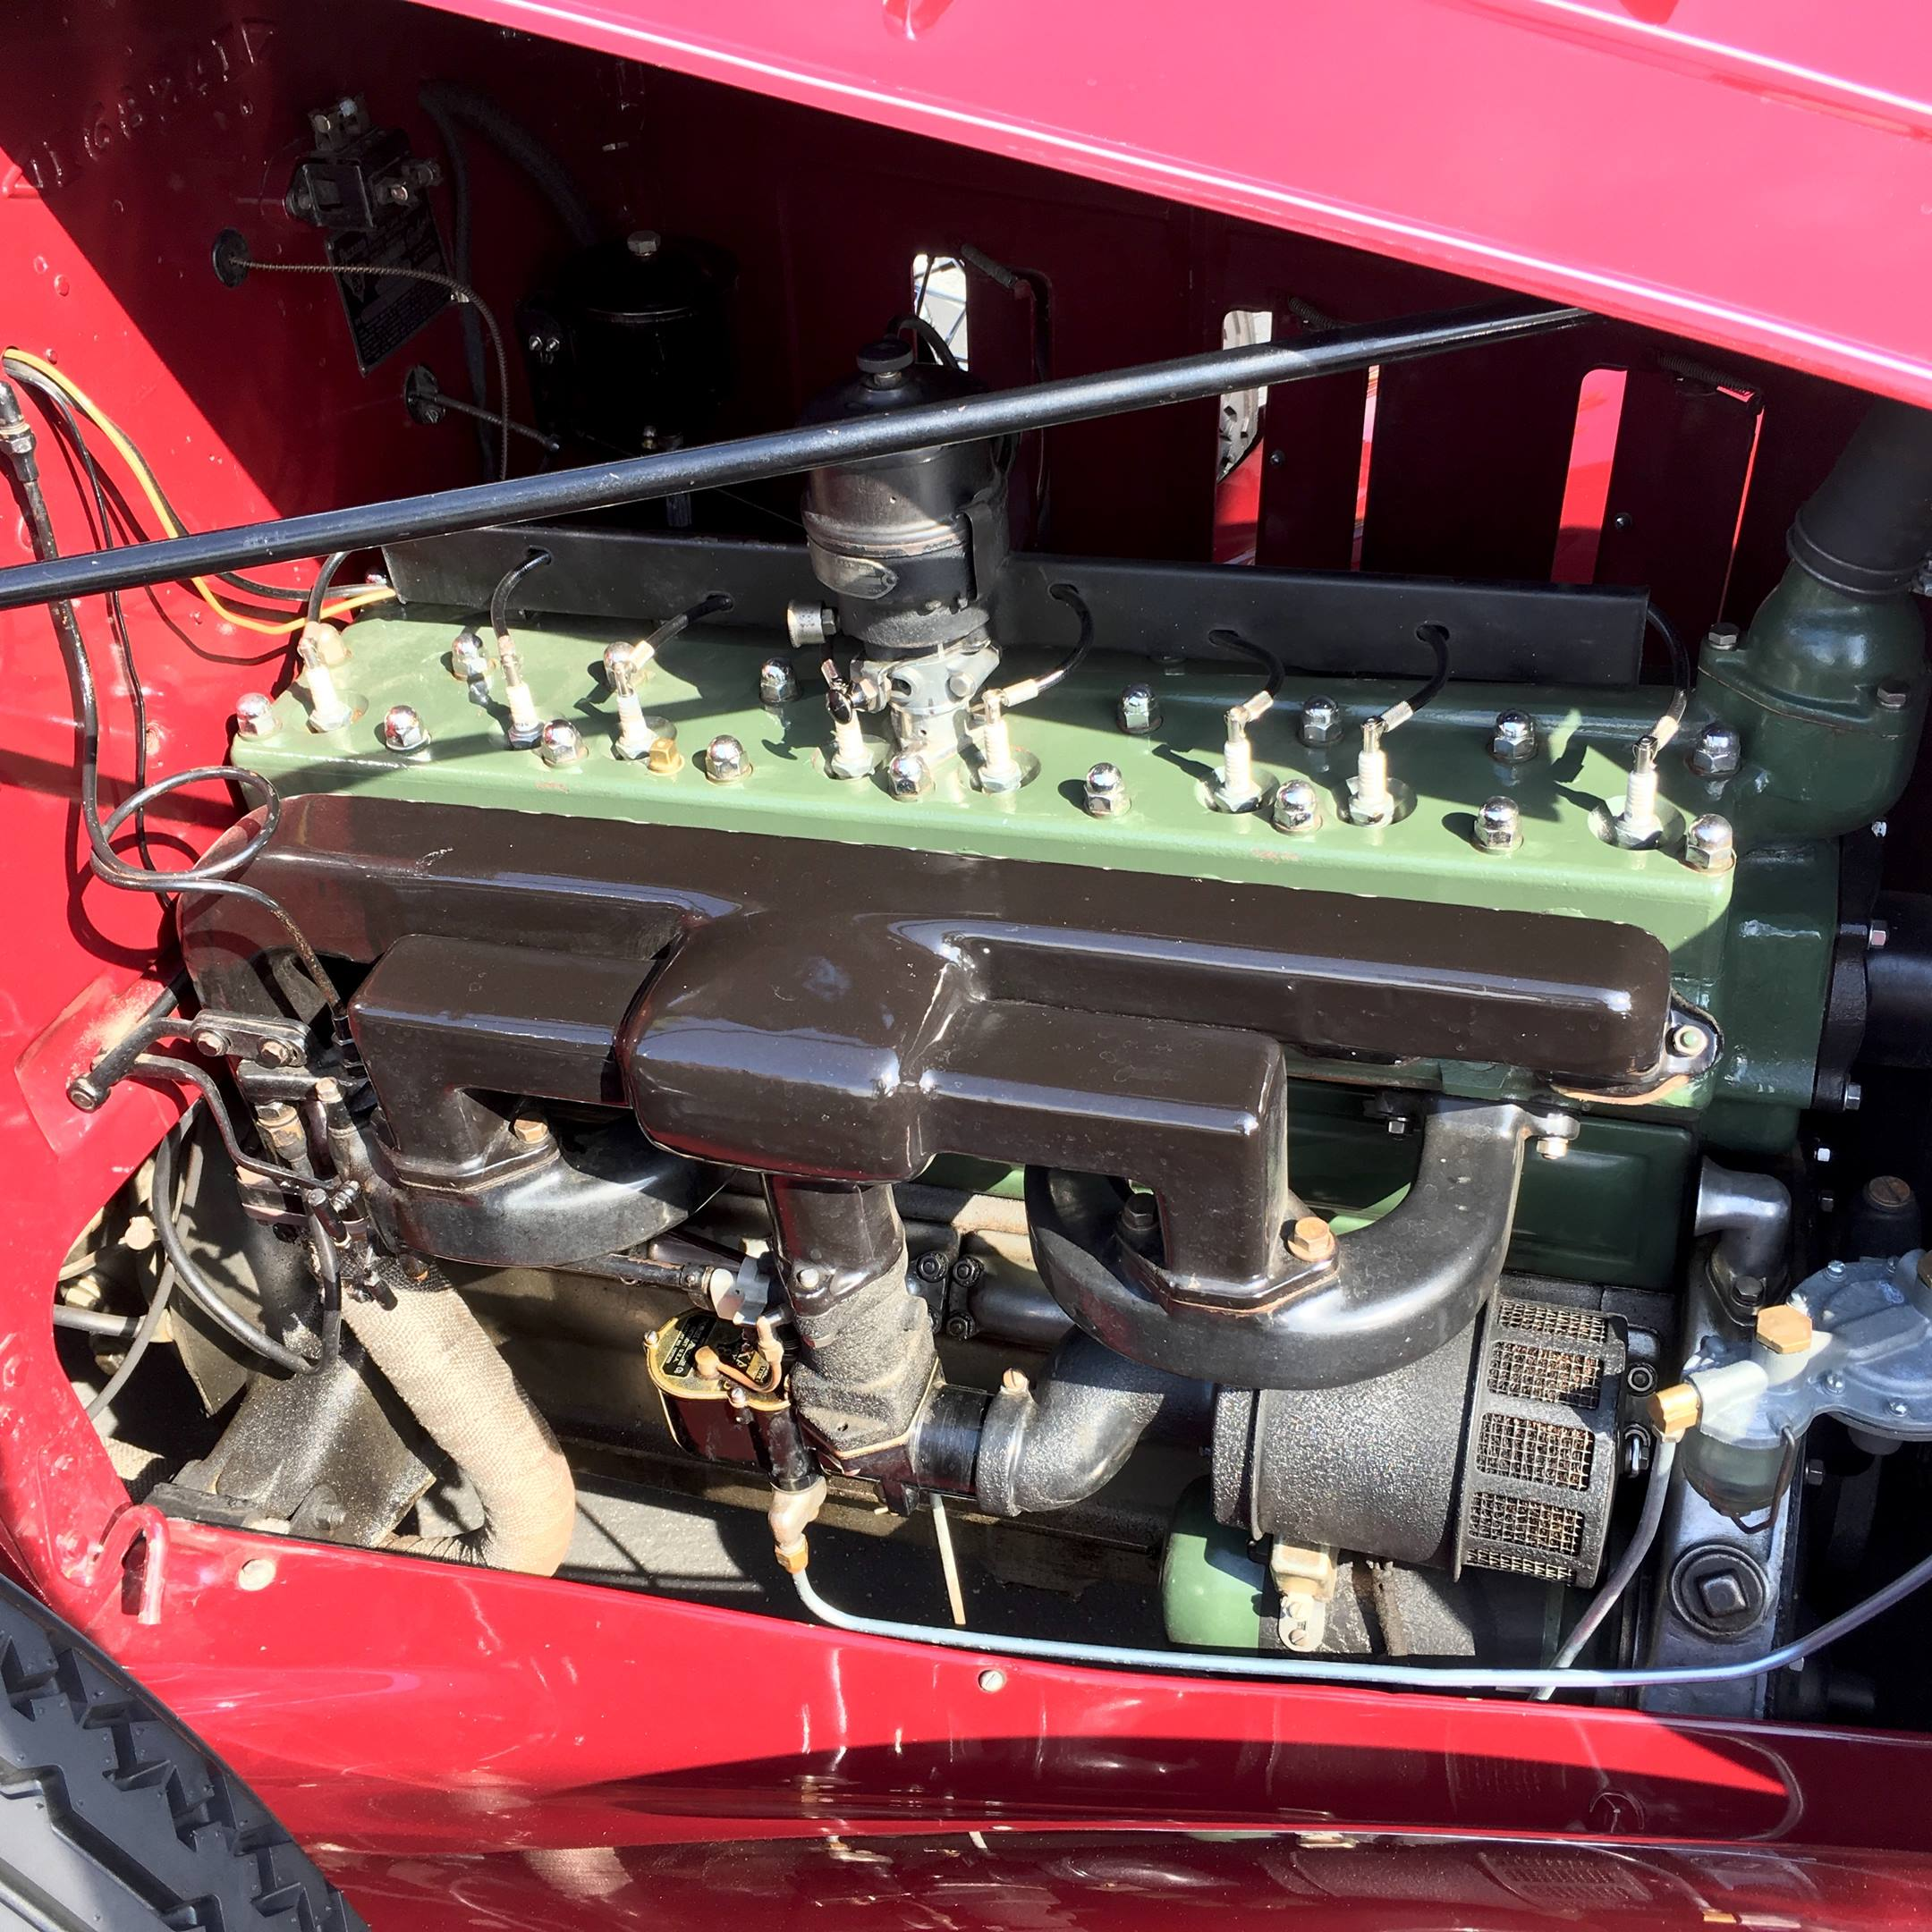 1932 Packard straight eight 257 cubic inch engine